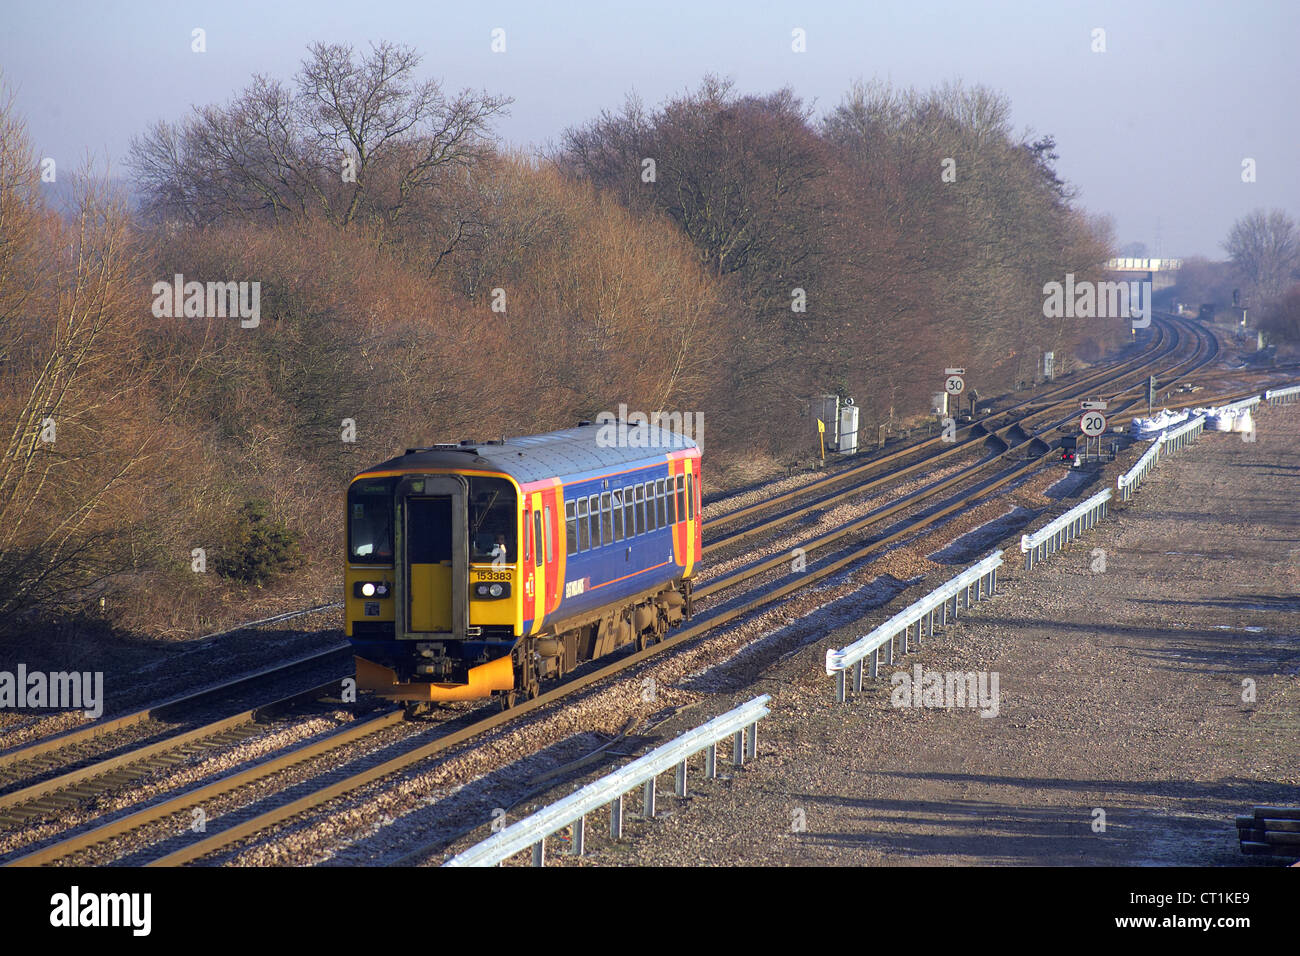 East Midlands train class 153 no 153383 passes through stenson junction with 1K13 1240 Derby to Crewe on 14/01/12. - Stock Image